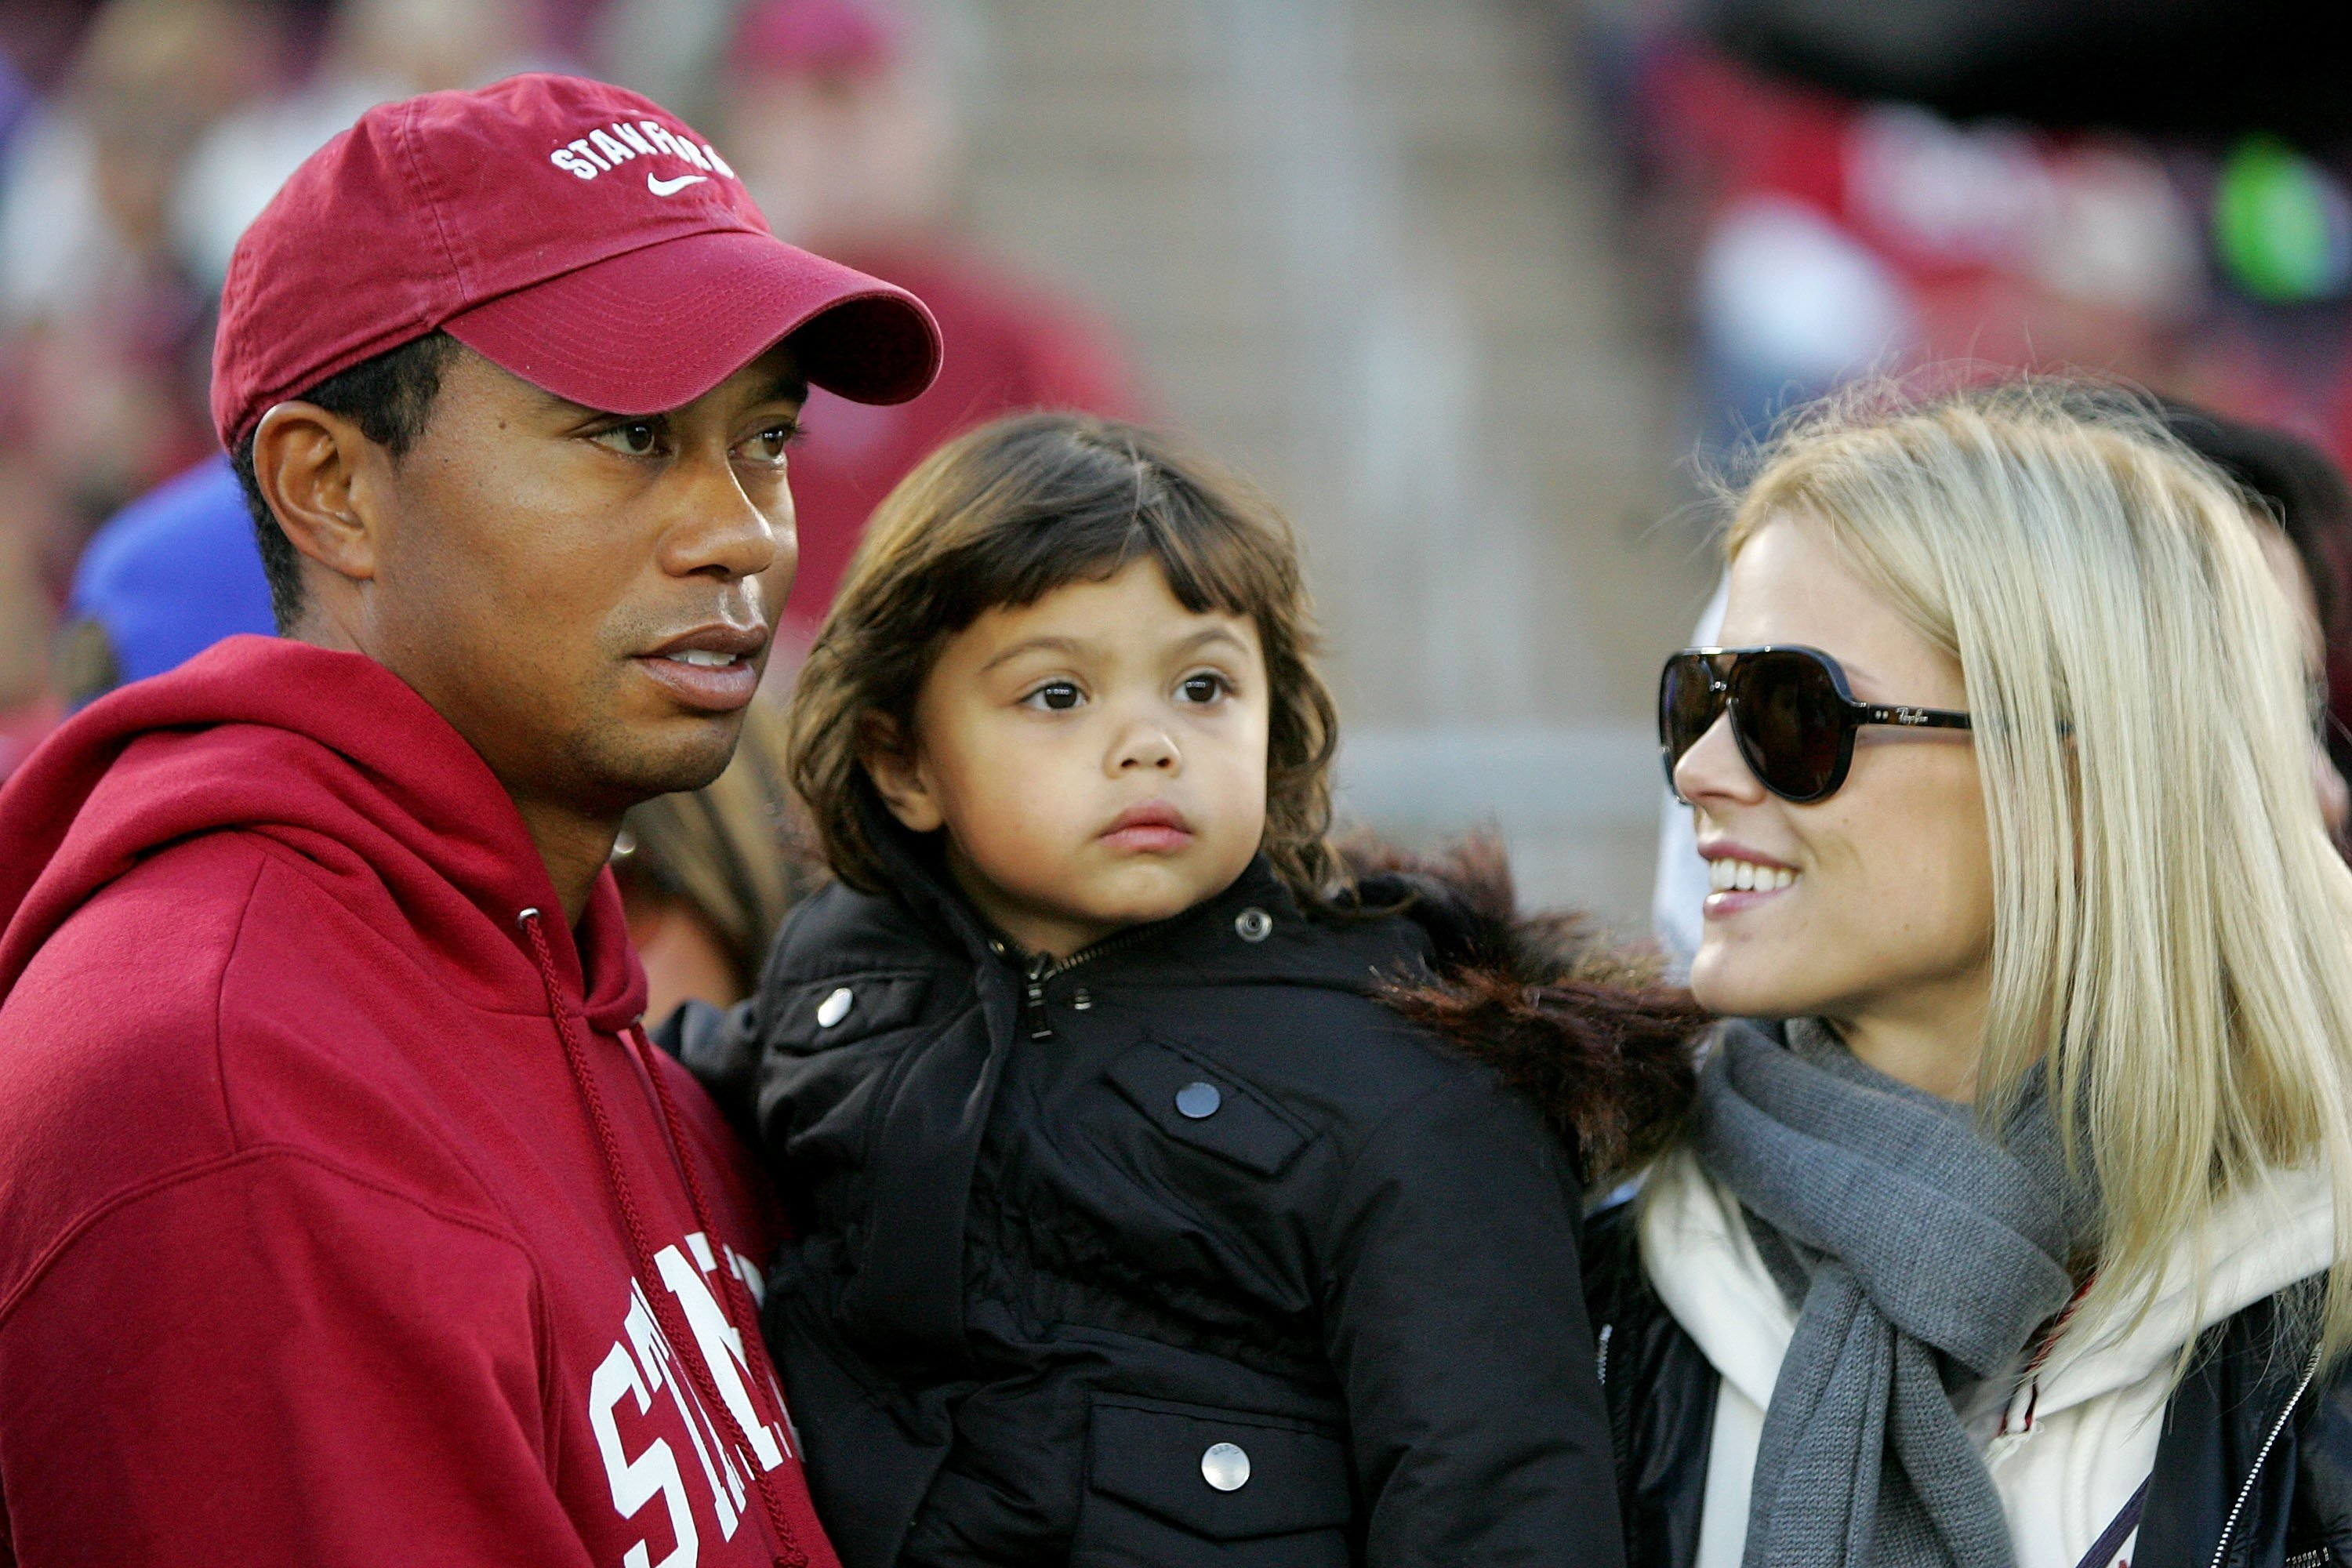 Tiger Woods, his daughter Sam, and his ex-wife, Elin Nordegren on November 21, 2009 in Palo Alto, California | Source: Getty Images